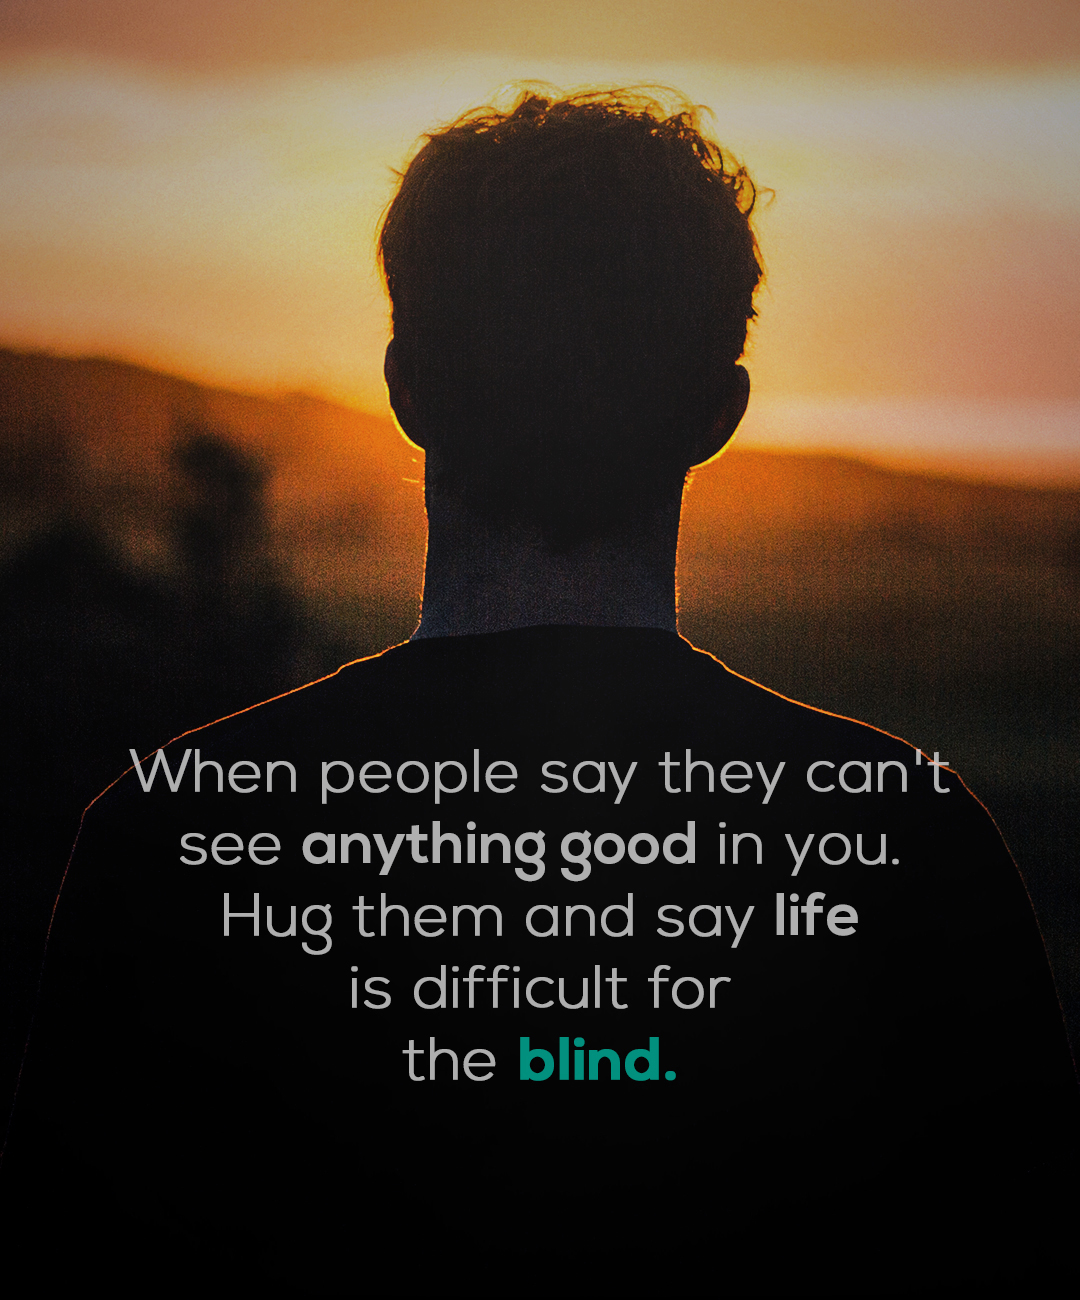 """When people say they can't see anything good in you. Hug them and say life is difficult for the blind."" -Anonymous [1800×1300]"